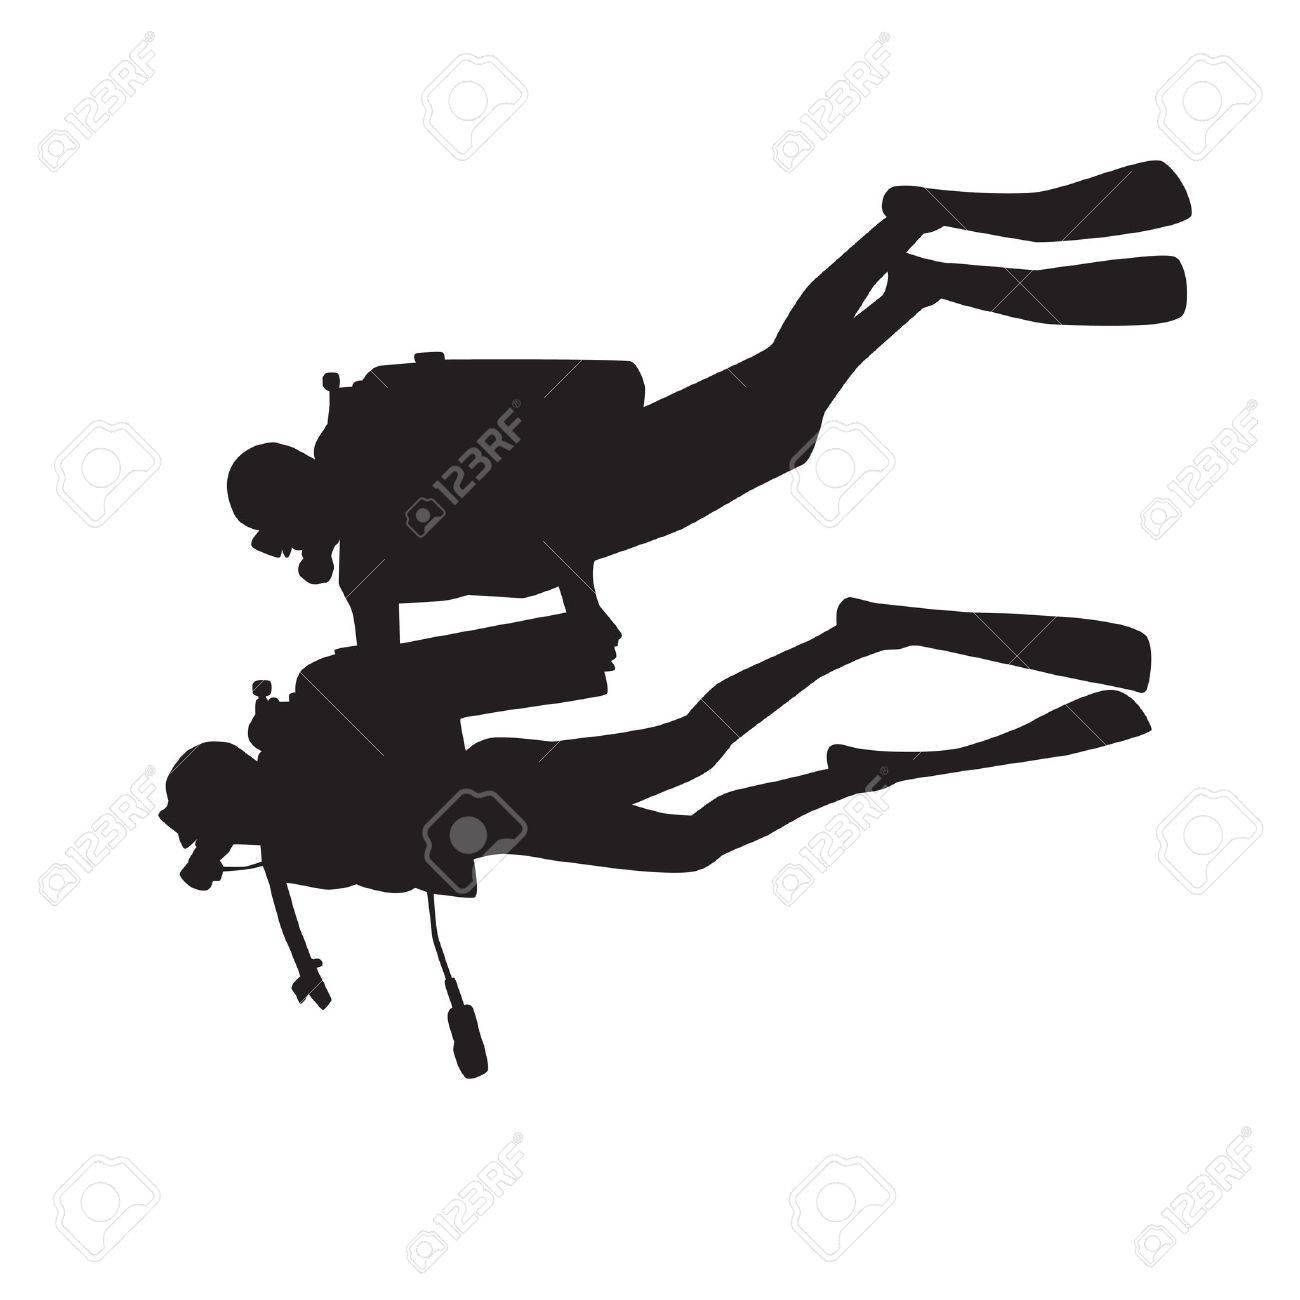 1300x1300 Scuba Diver Vector Image 1822441 Stockunlimited Brilliant High